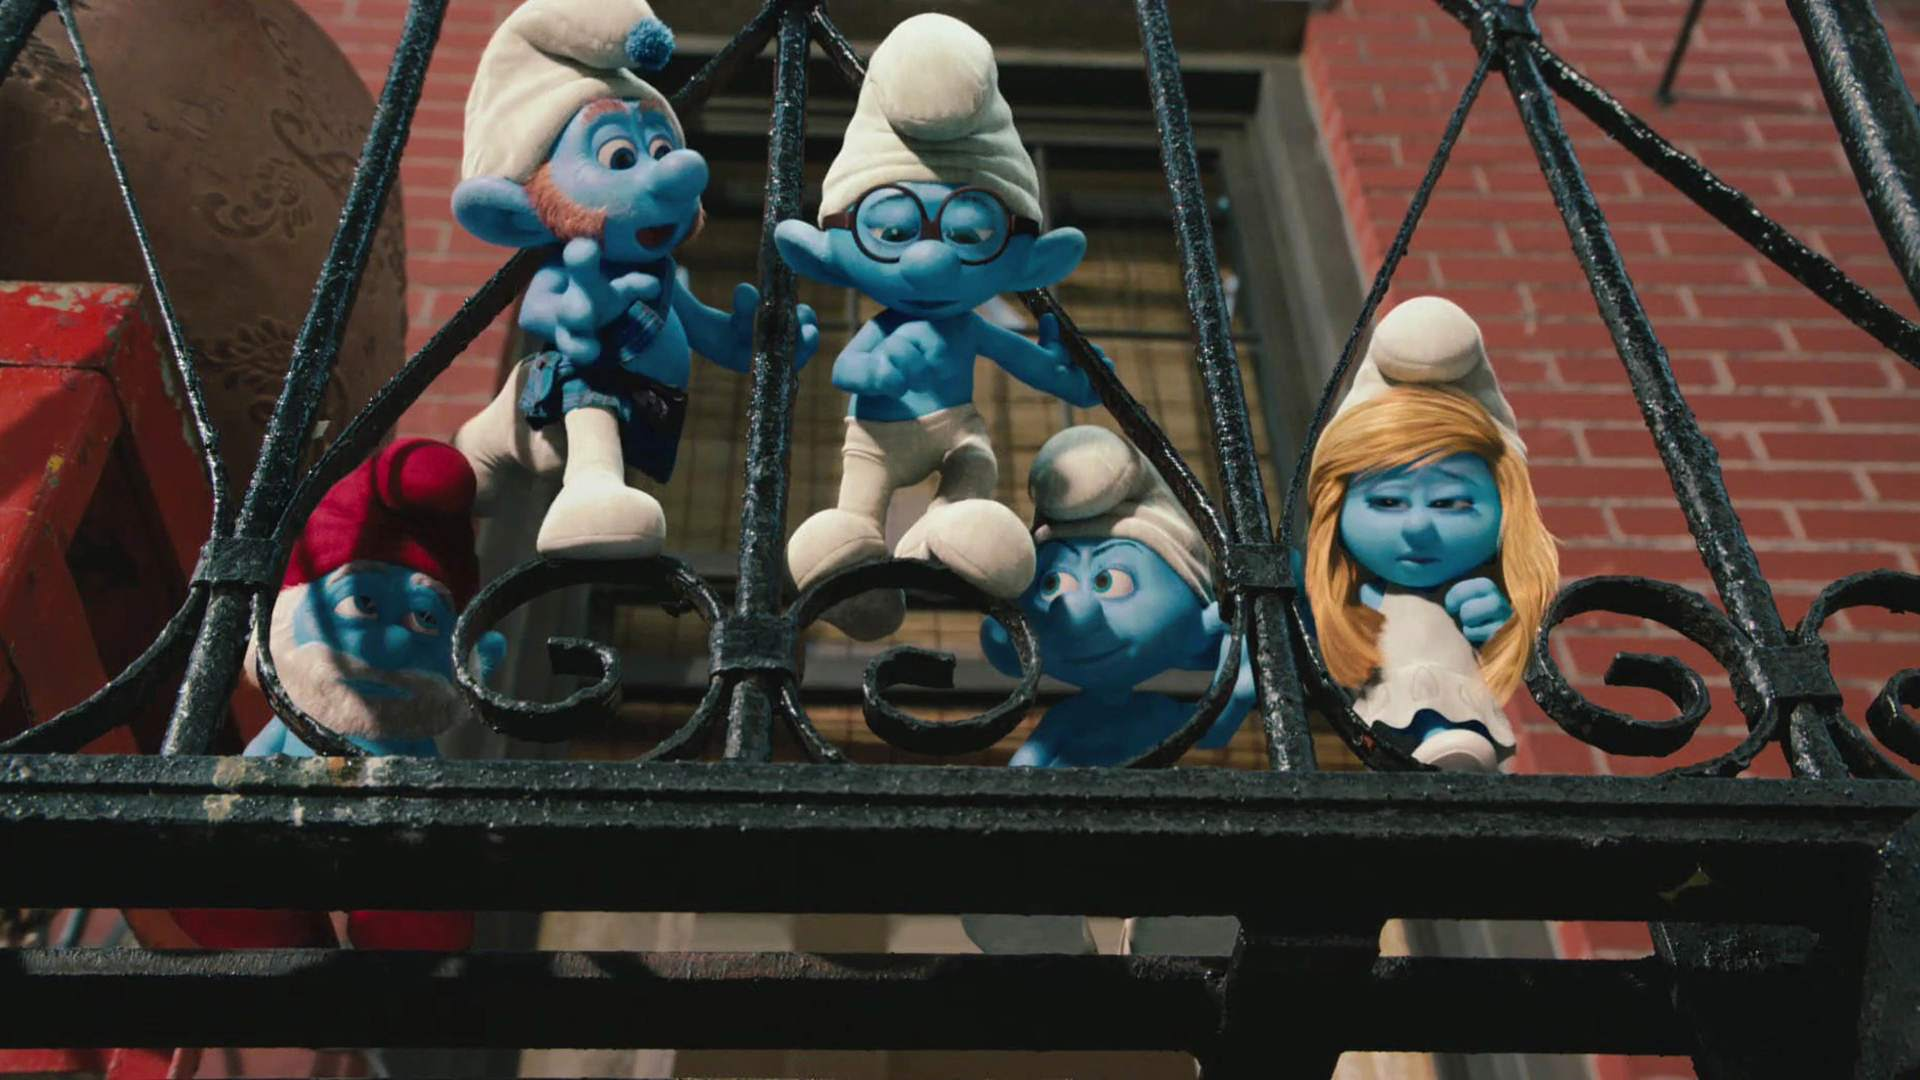 http://1.bp.blogspot.com/-5NQGVfTumXI/TuHc5Jd-9mI/AAAAAAAAFJo/uH_U1wE4MEM/s1920/the-smurfs-2011-wallpaper-7.jpg